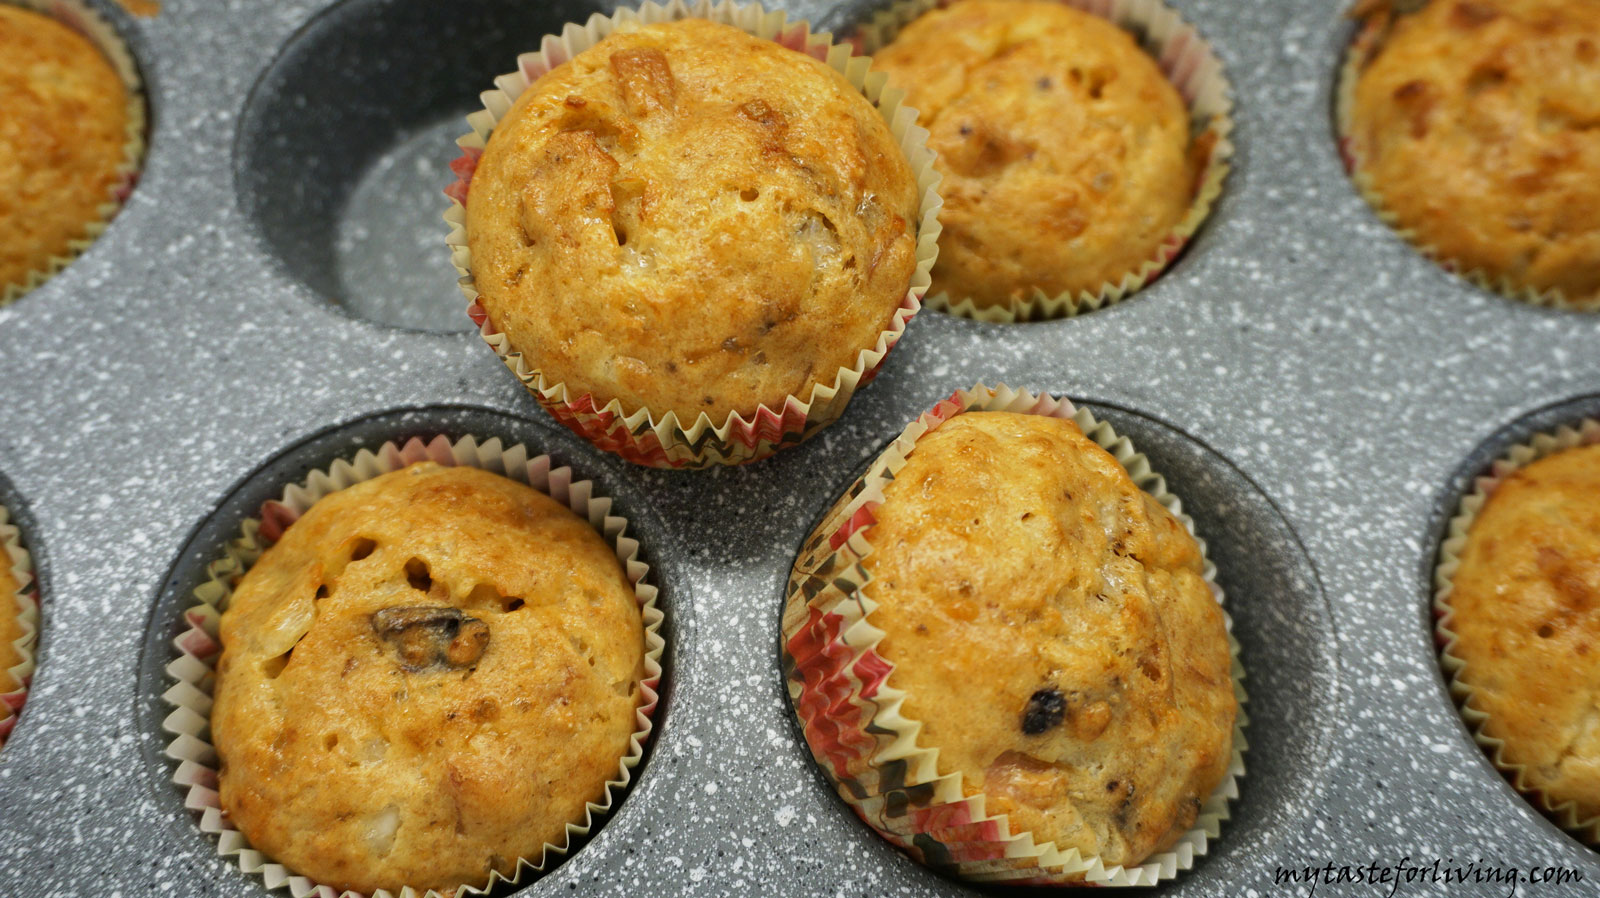 Delicious einkorn muffins with cottage cheese, yellow cheese, white cheese and olives.